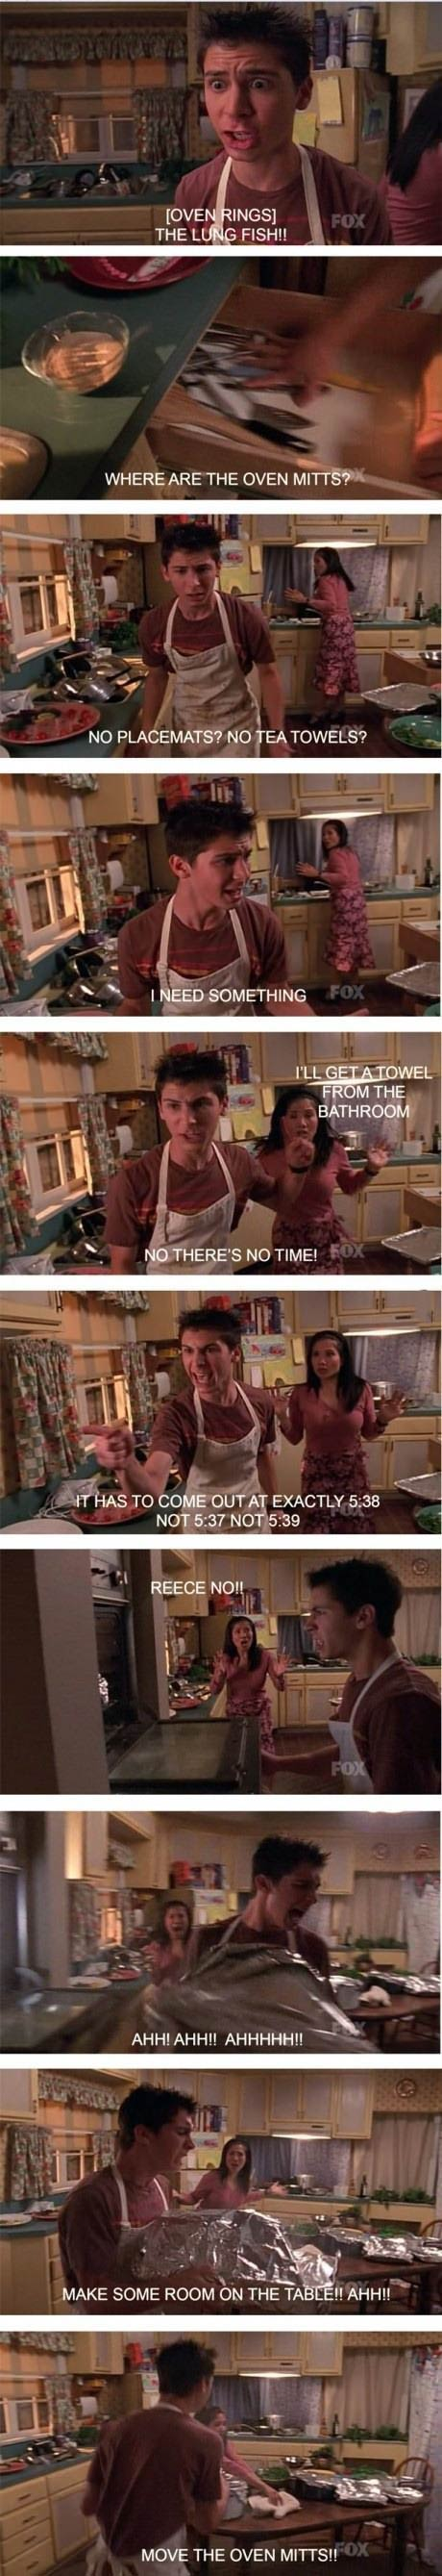 malcom in the middle, tv show, stupid, oven mitts, stove, comic